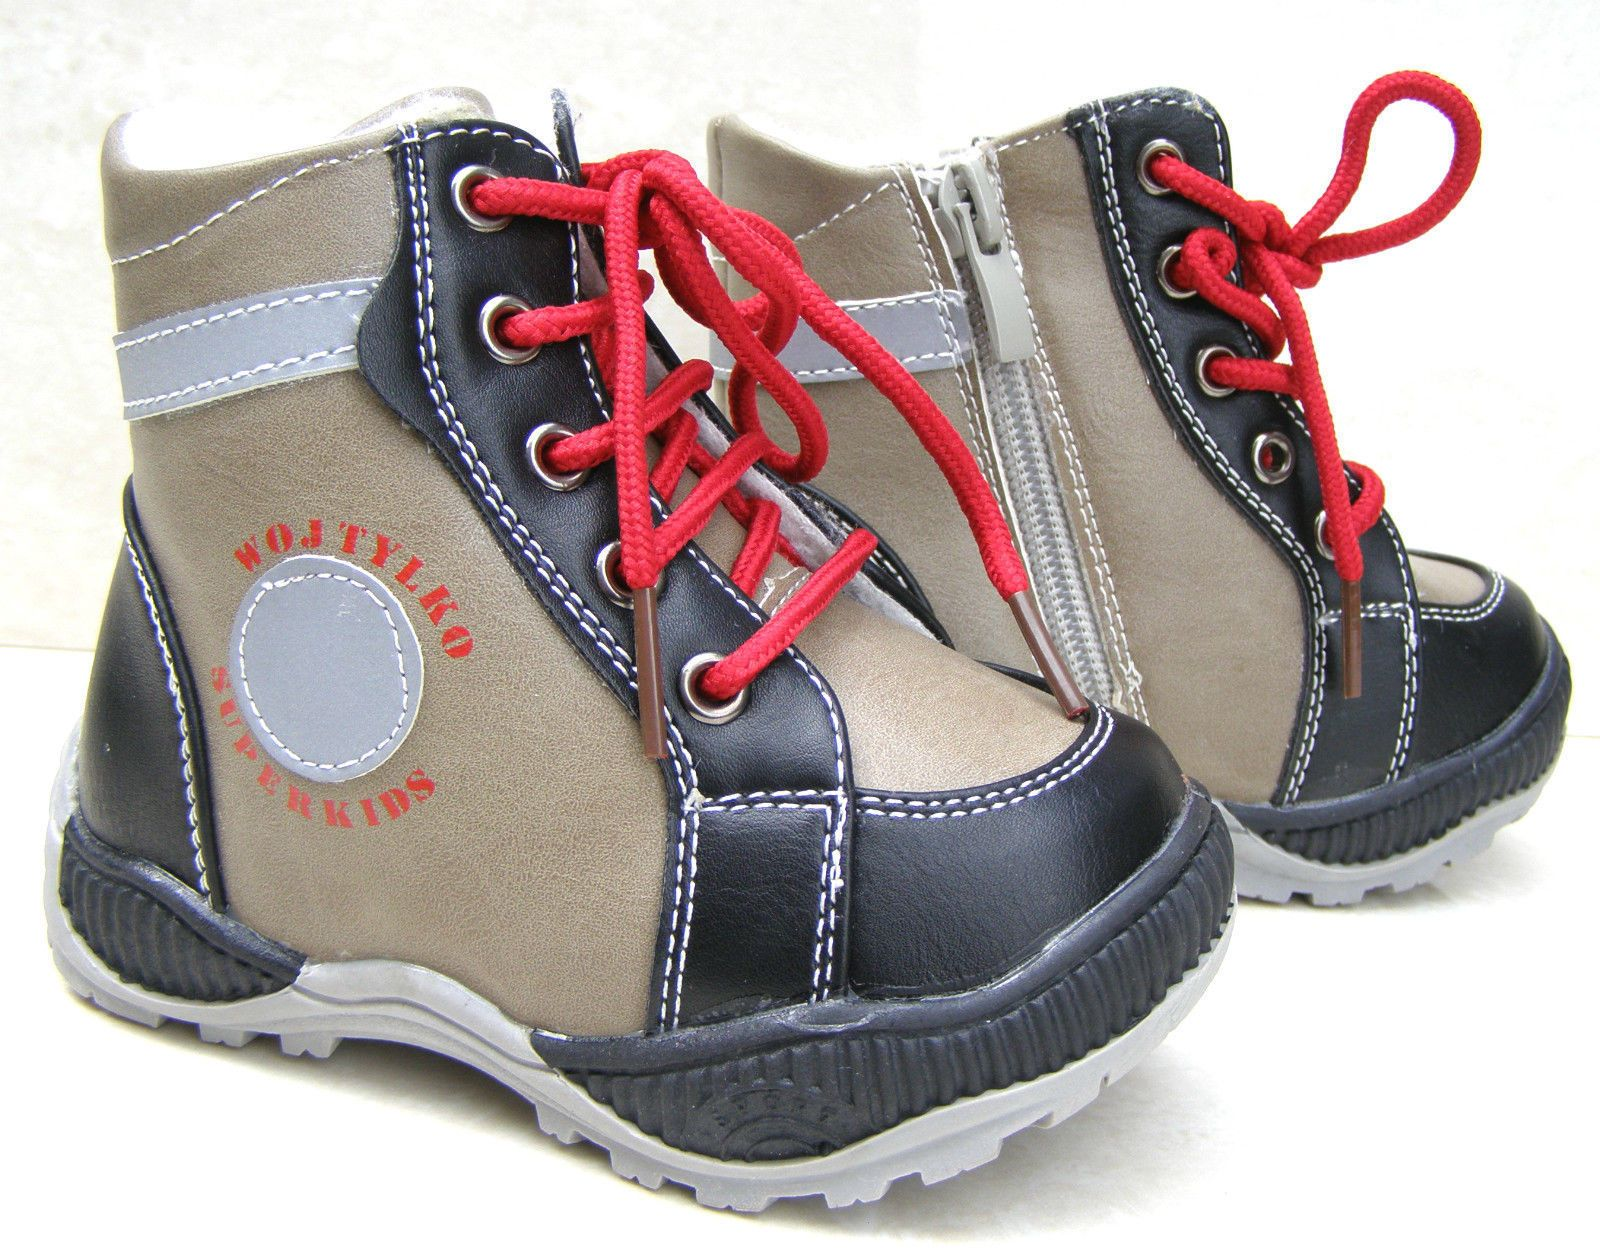 Black Baby Boys Zip Laces Fur Lined Warm Boots Winter Snow Shoes Uk